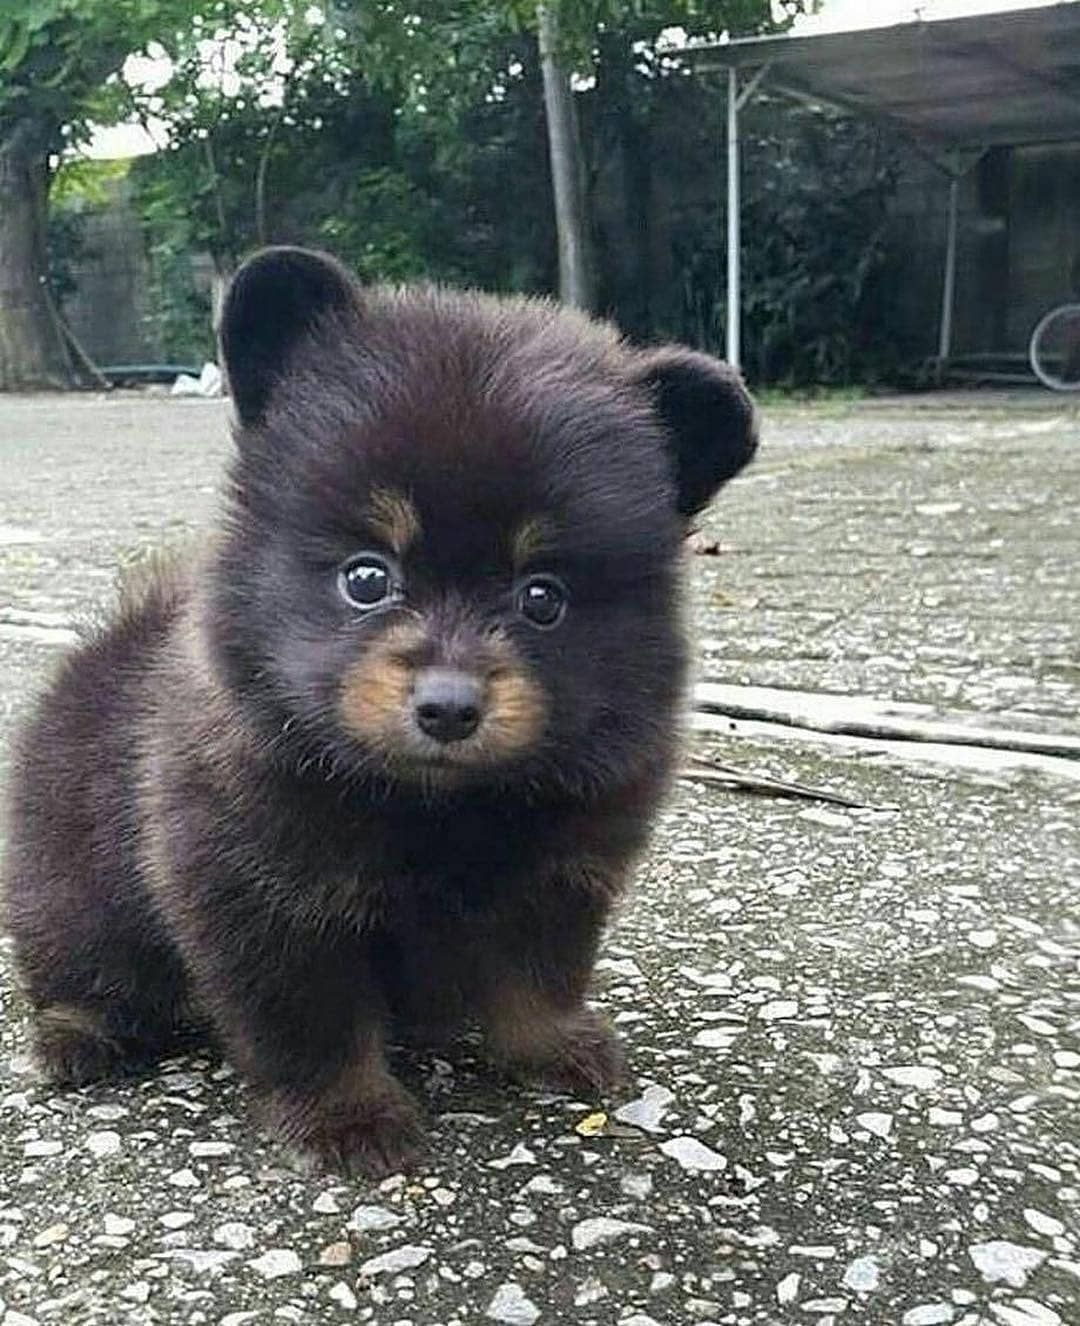 Dog Or Bear Follow Animalonplanet For More